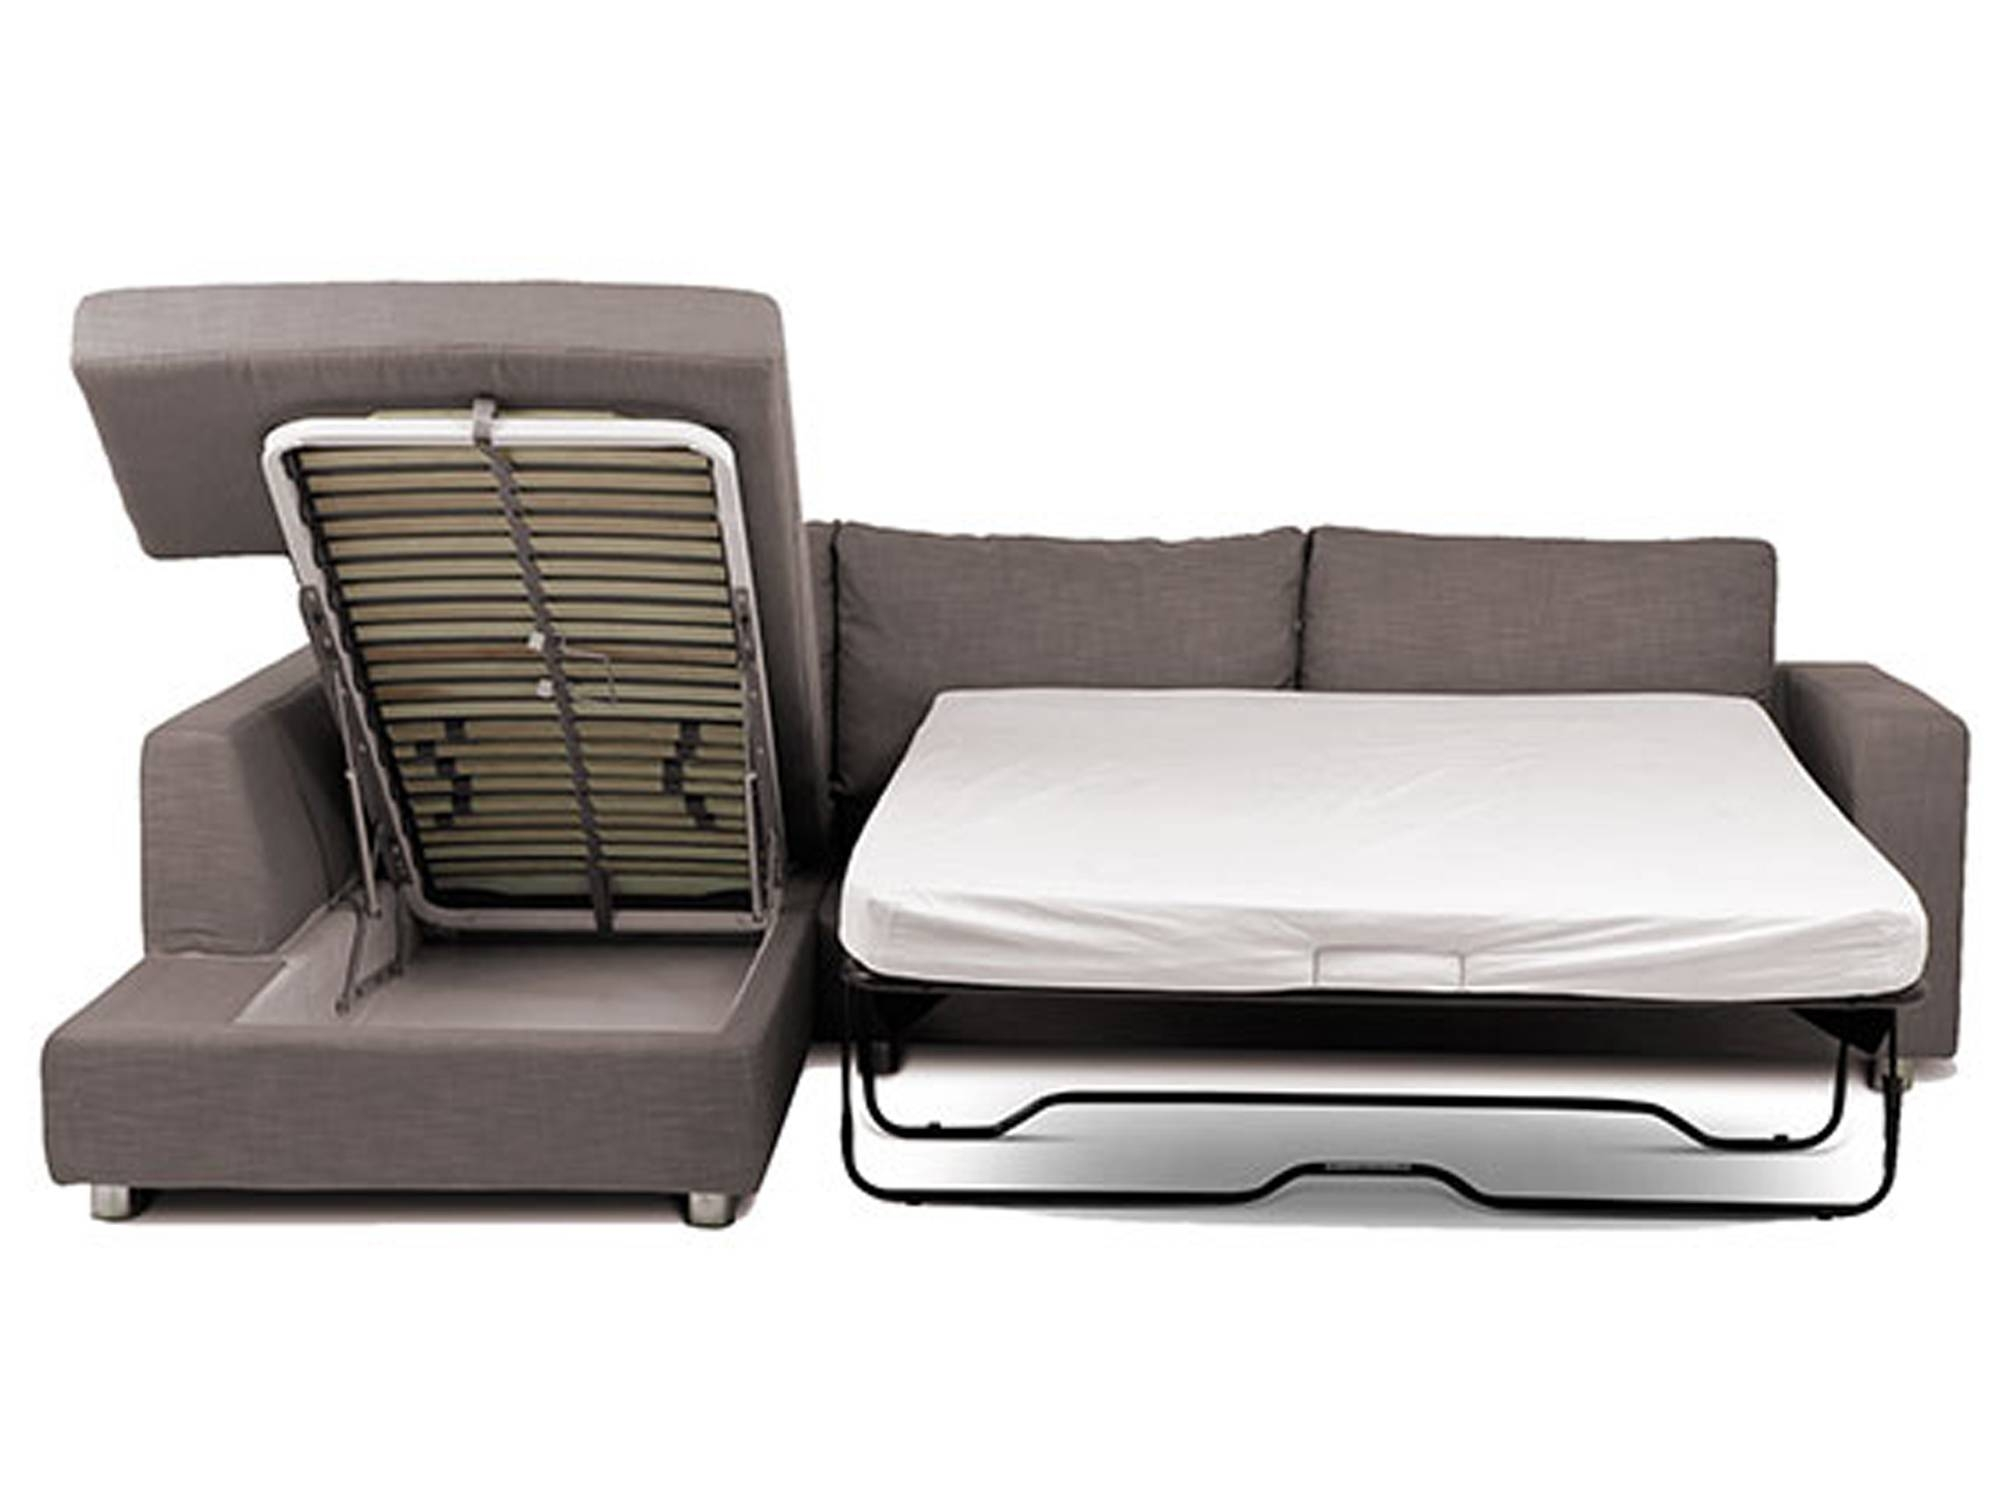 Sofas: Classic Meets Contemporary Chaise Sofa Bed For Ideal Living in Corner Sofa Bed With Storage Ikea (Image 28 of 30)